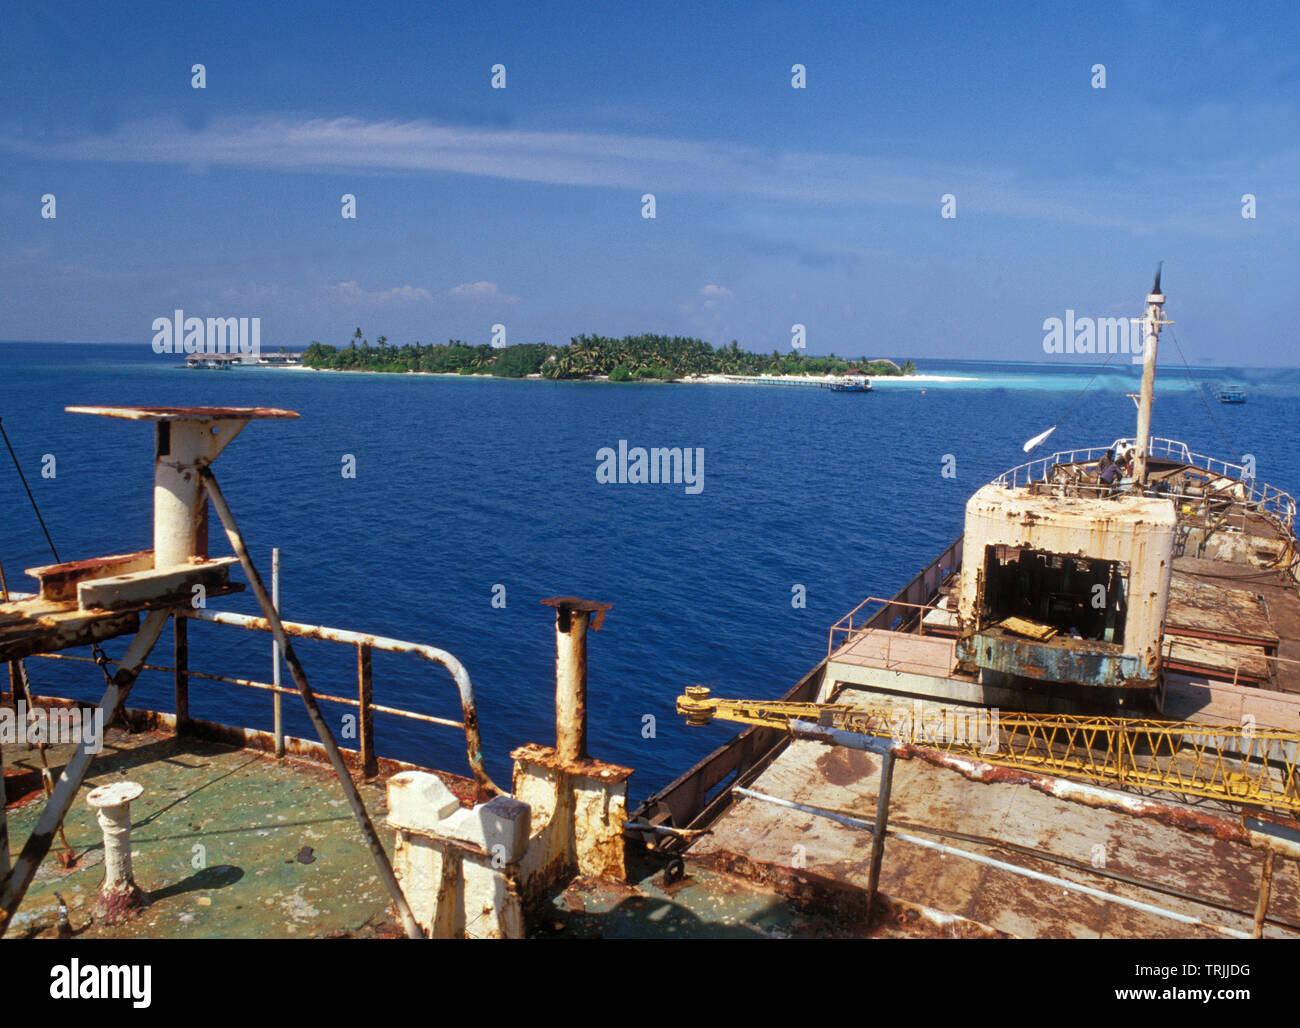 The freight wreckship Kudih Ma is carried to the tourist island and there to be sent to the bottom for e better submarine environment. - Stock Image